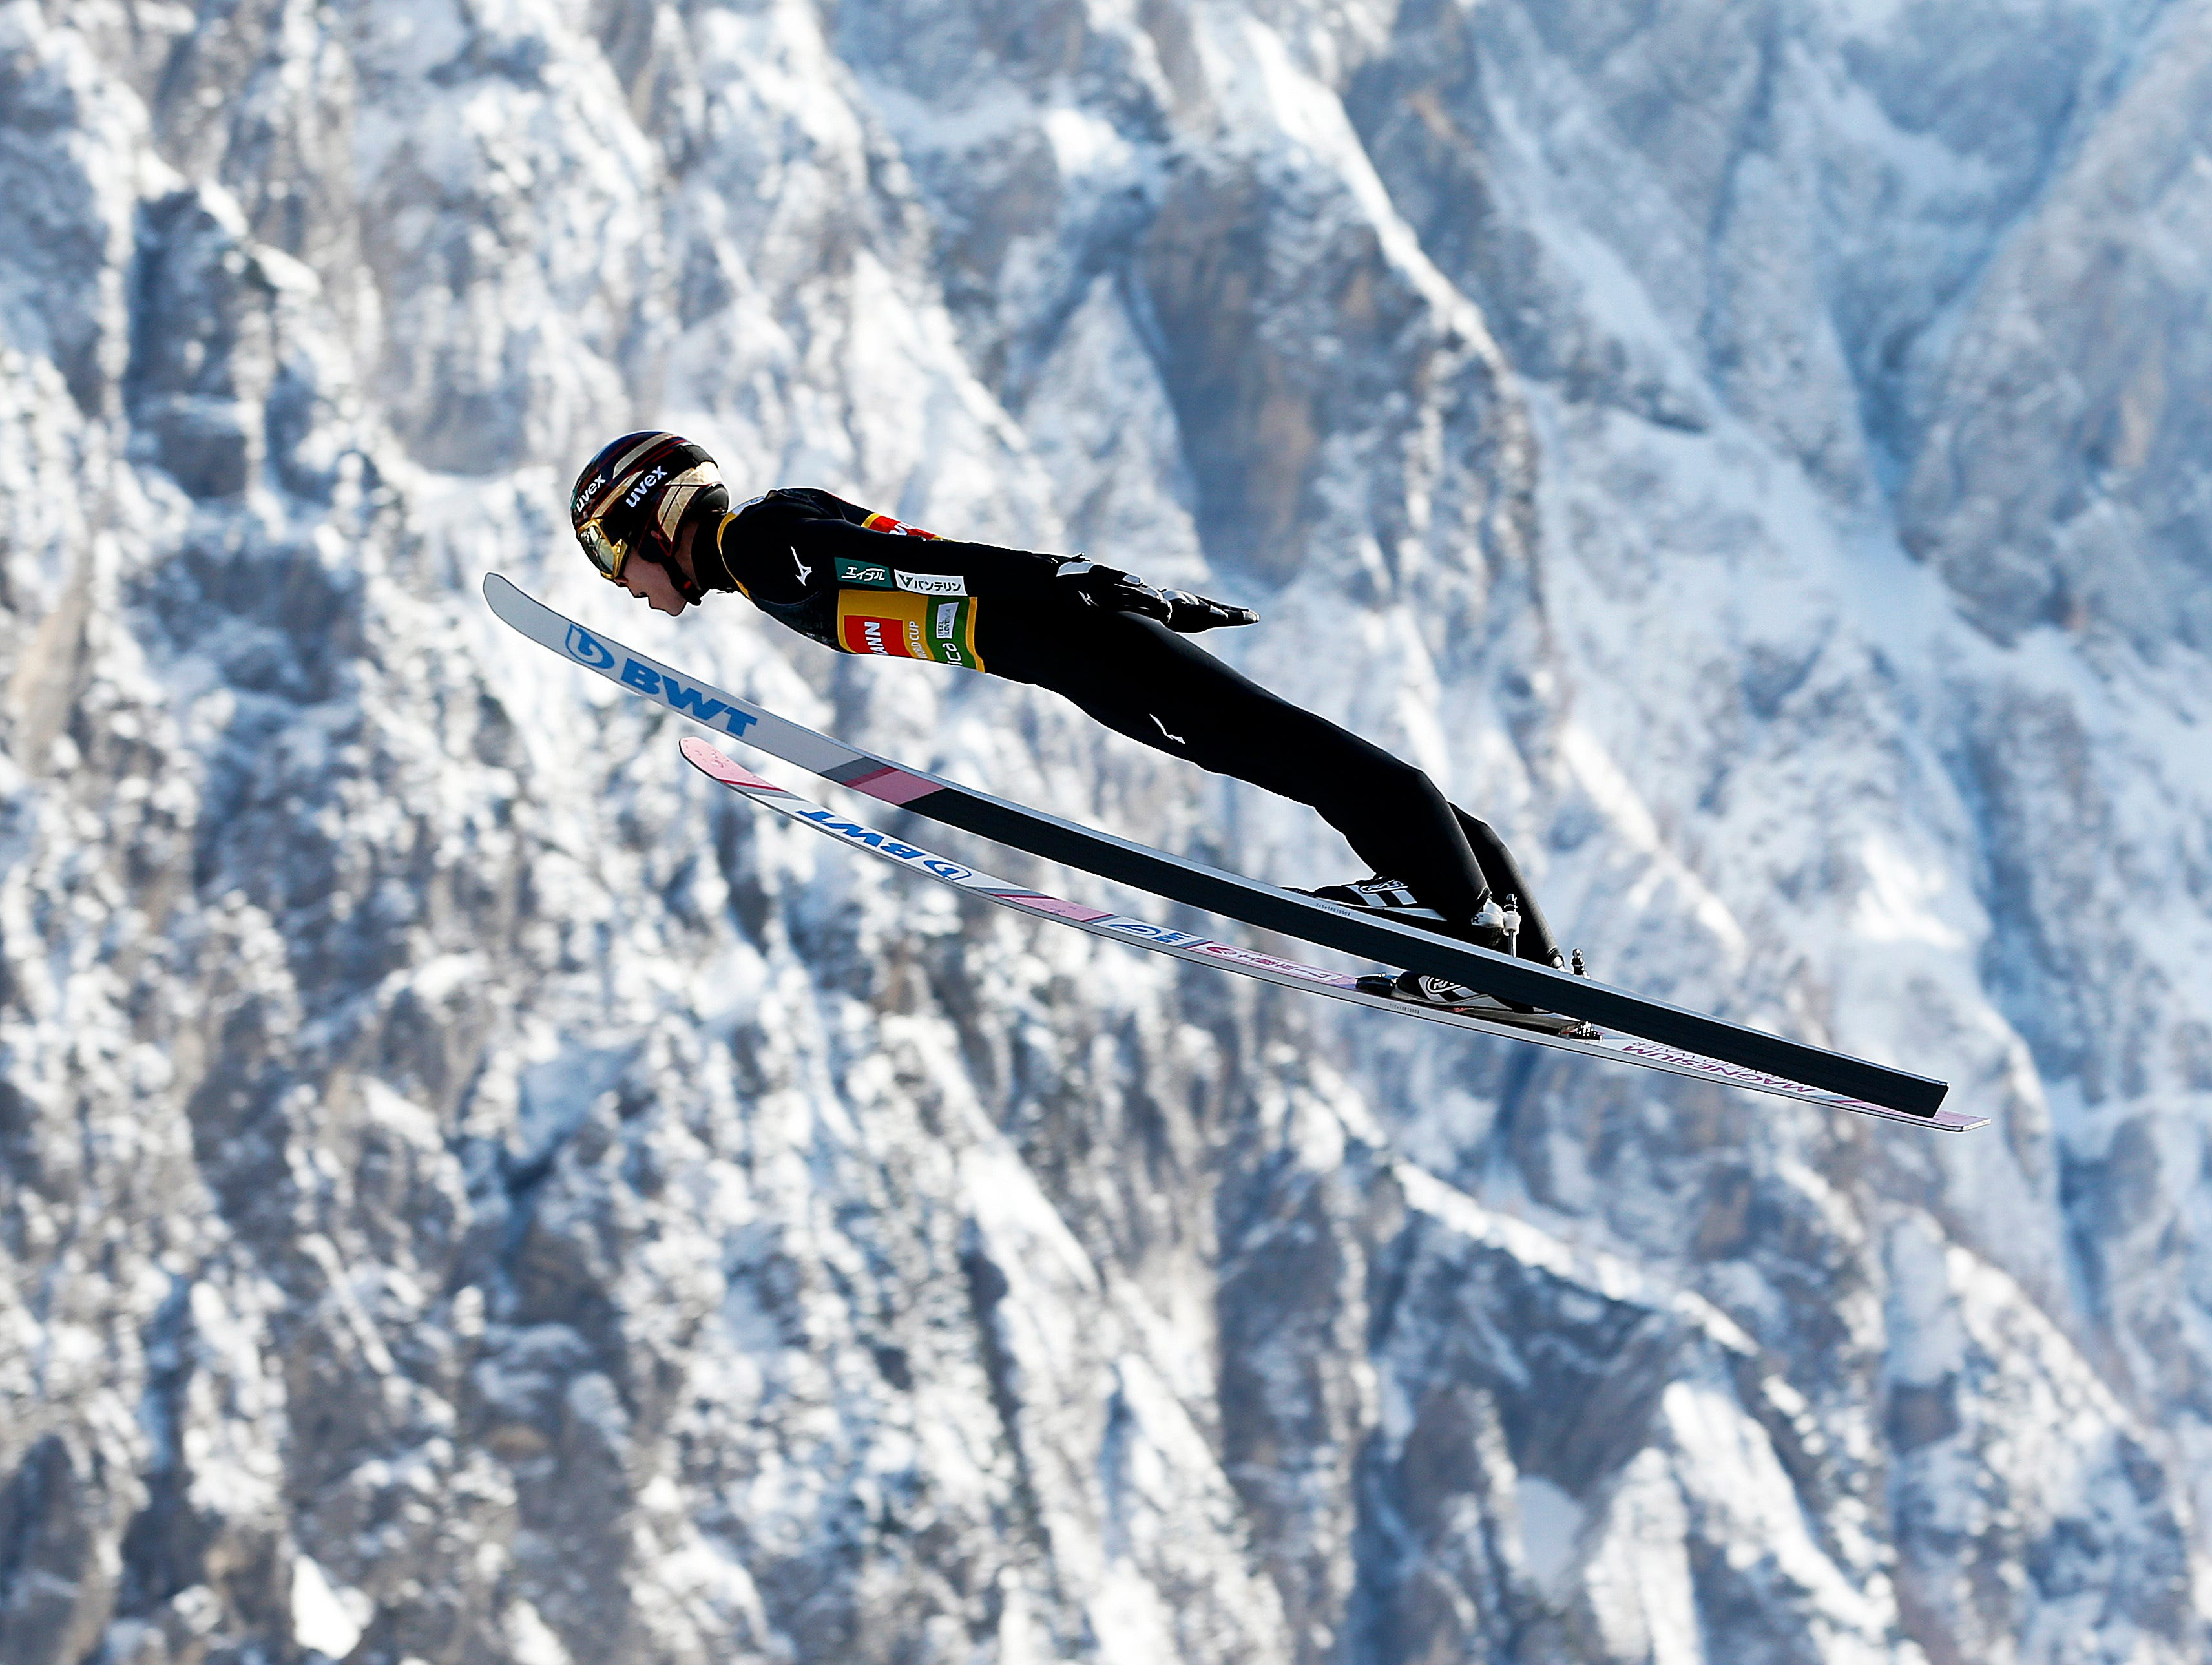 Japan's Ryoyu Kobayashi competes during the first jump in the individual competition at the Ski Jumping World Cup event in Planica, Slovenia, Friday, March 22, 2019.